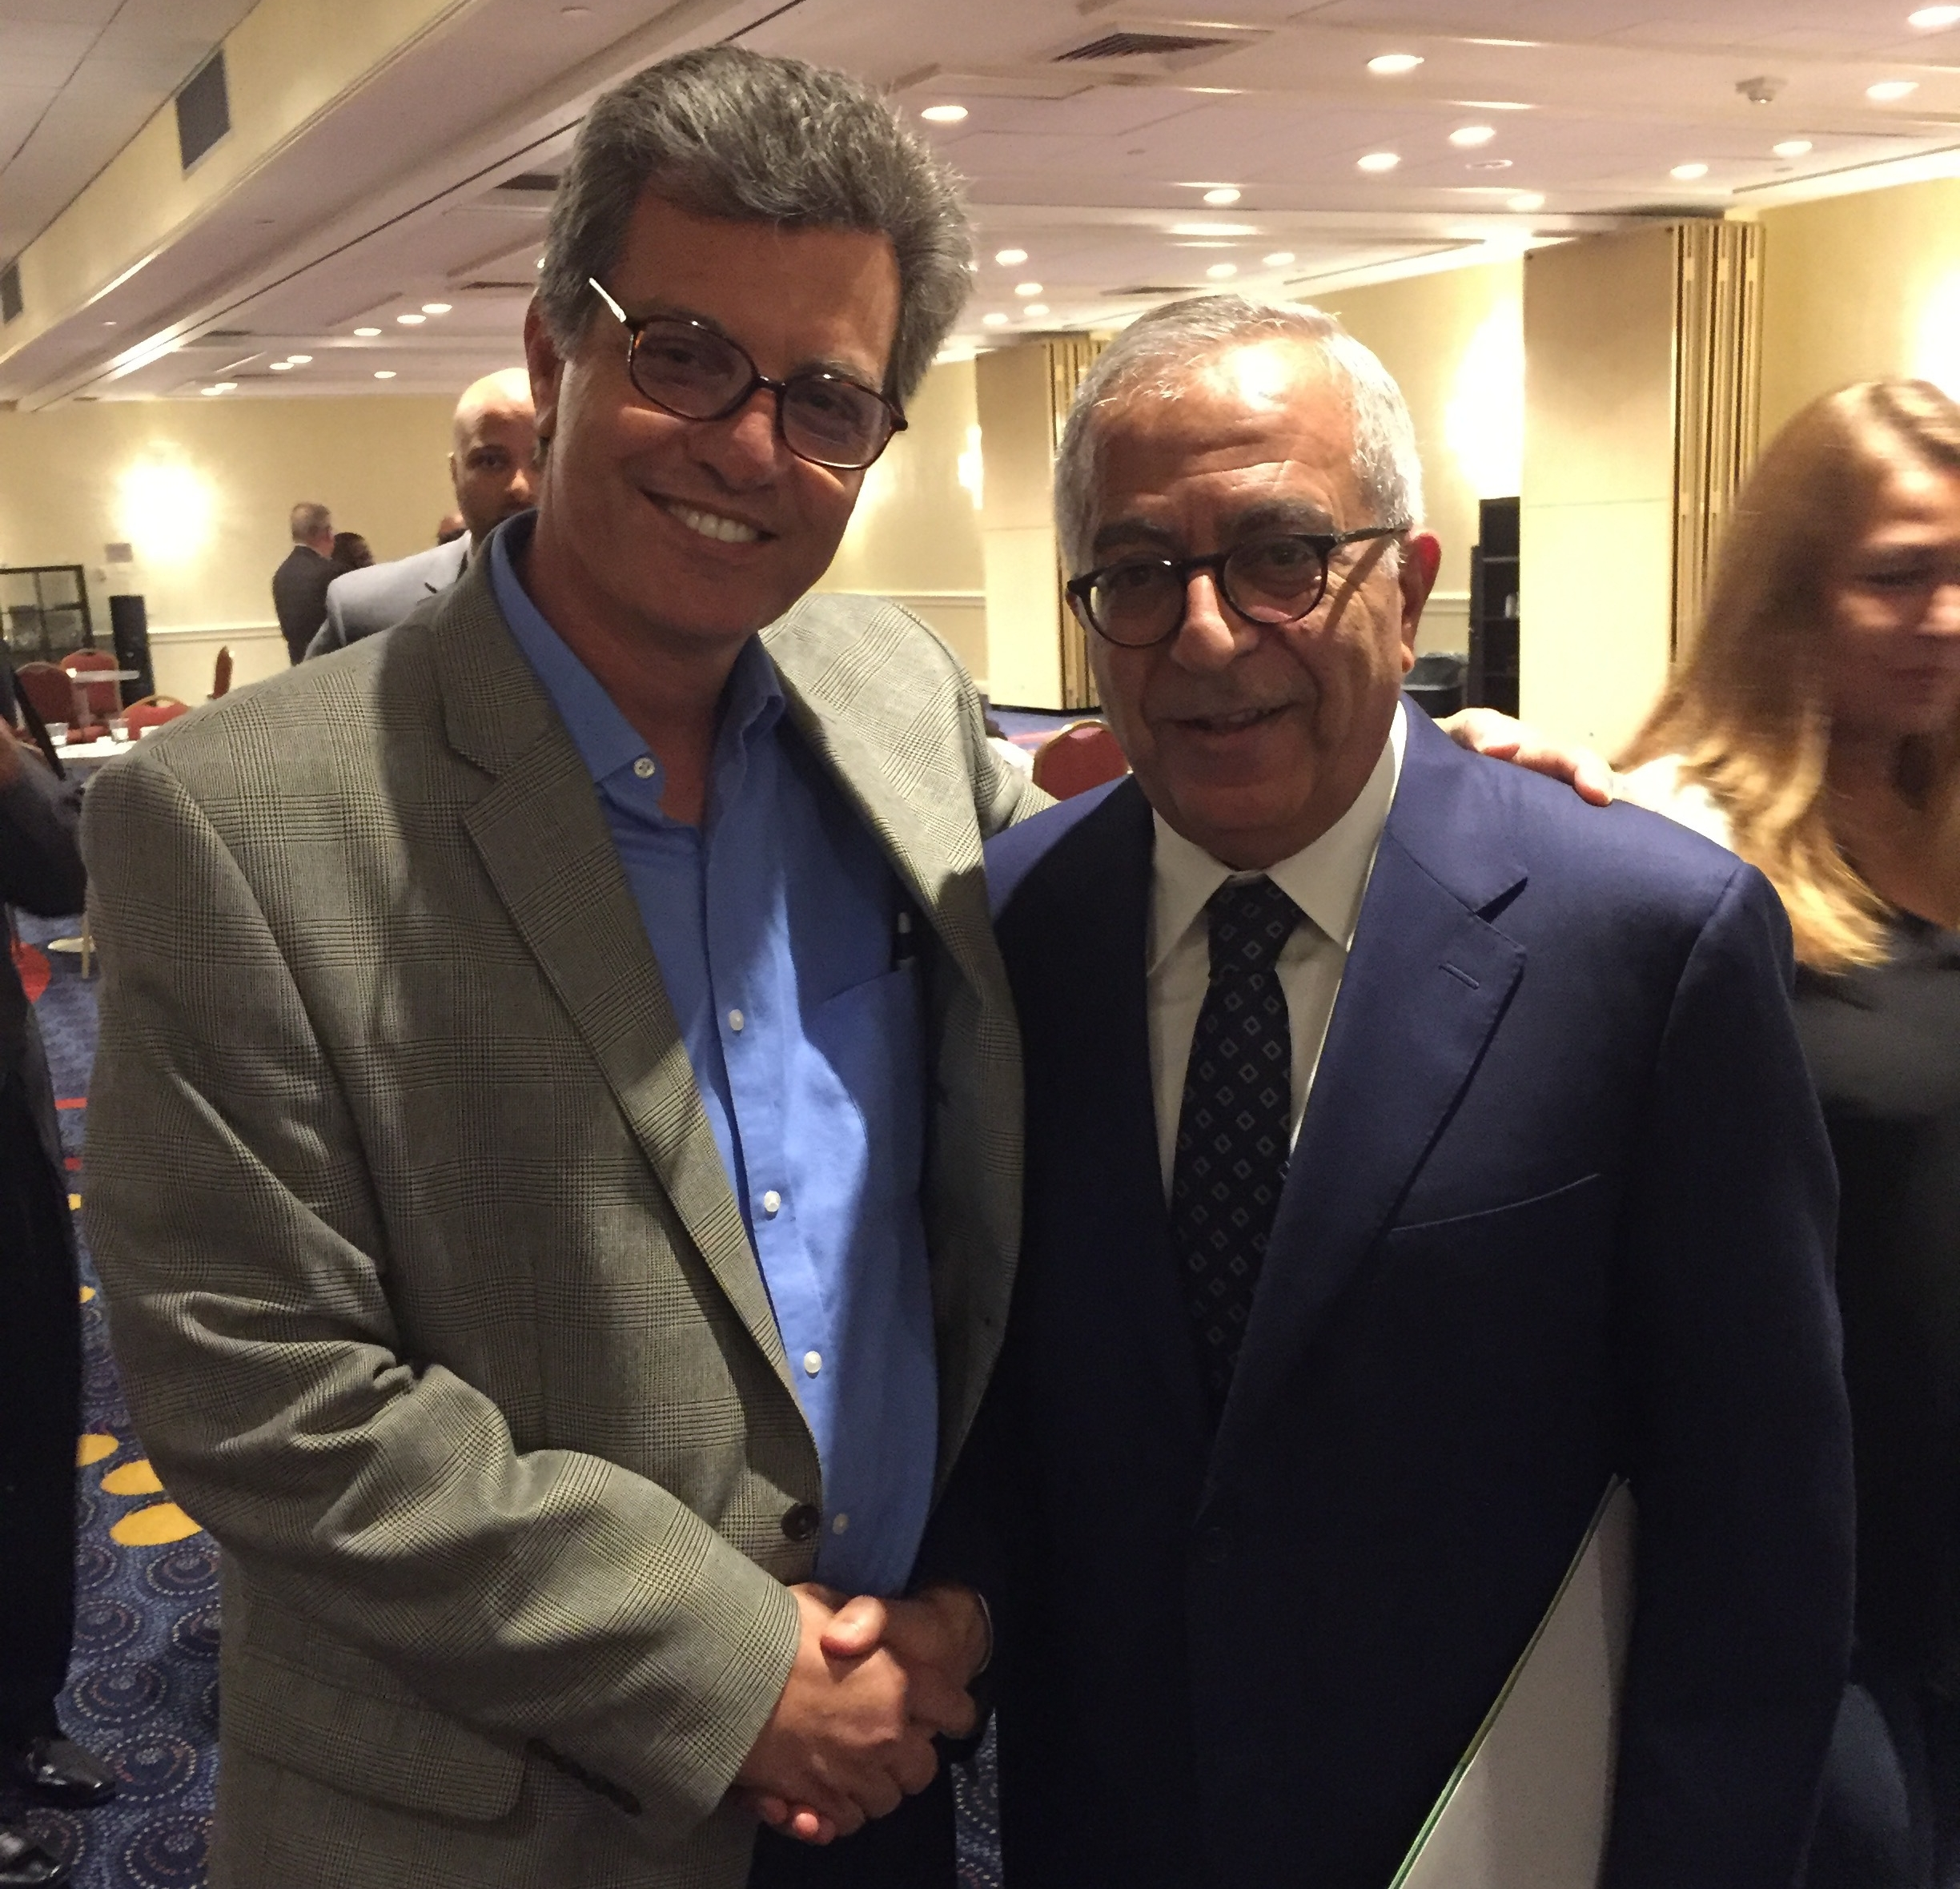 Ziyad with Salam Fayyad, forrmer Finance Minister and Prime Minister of the Palestinian Authority - at AMP 2016